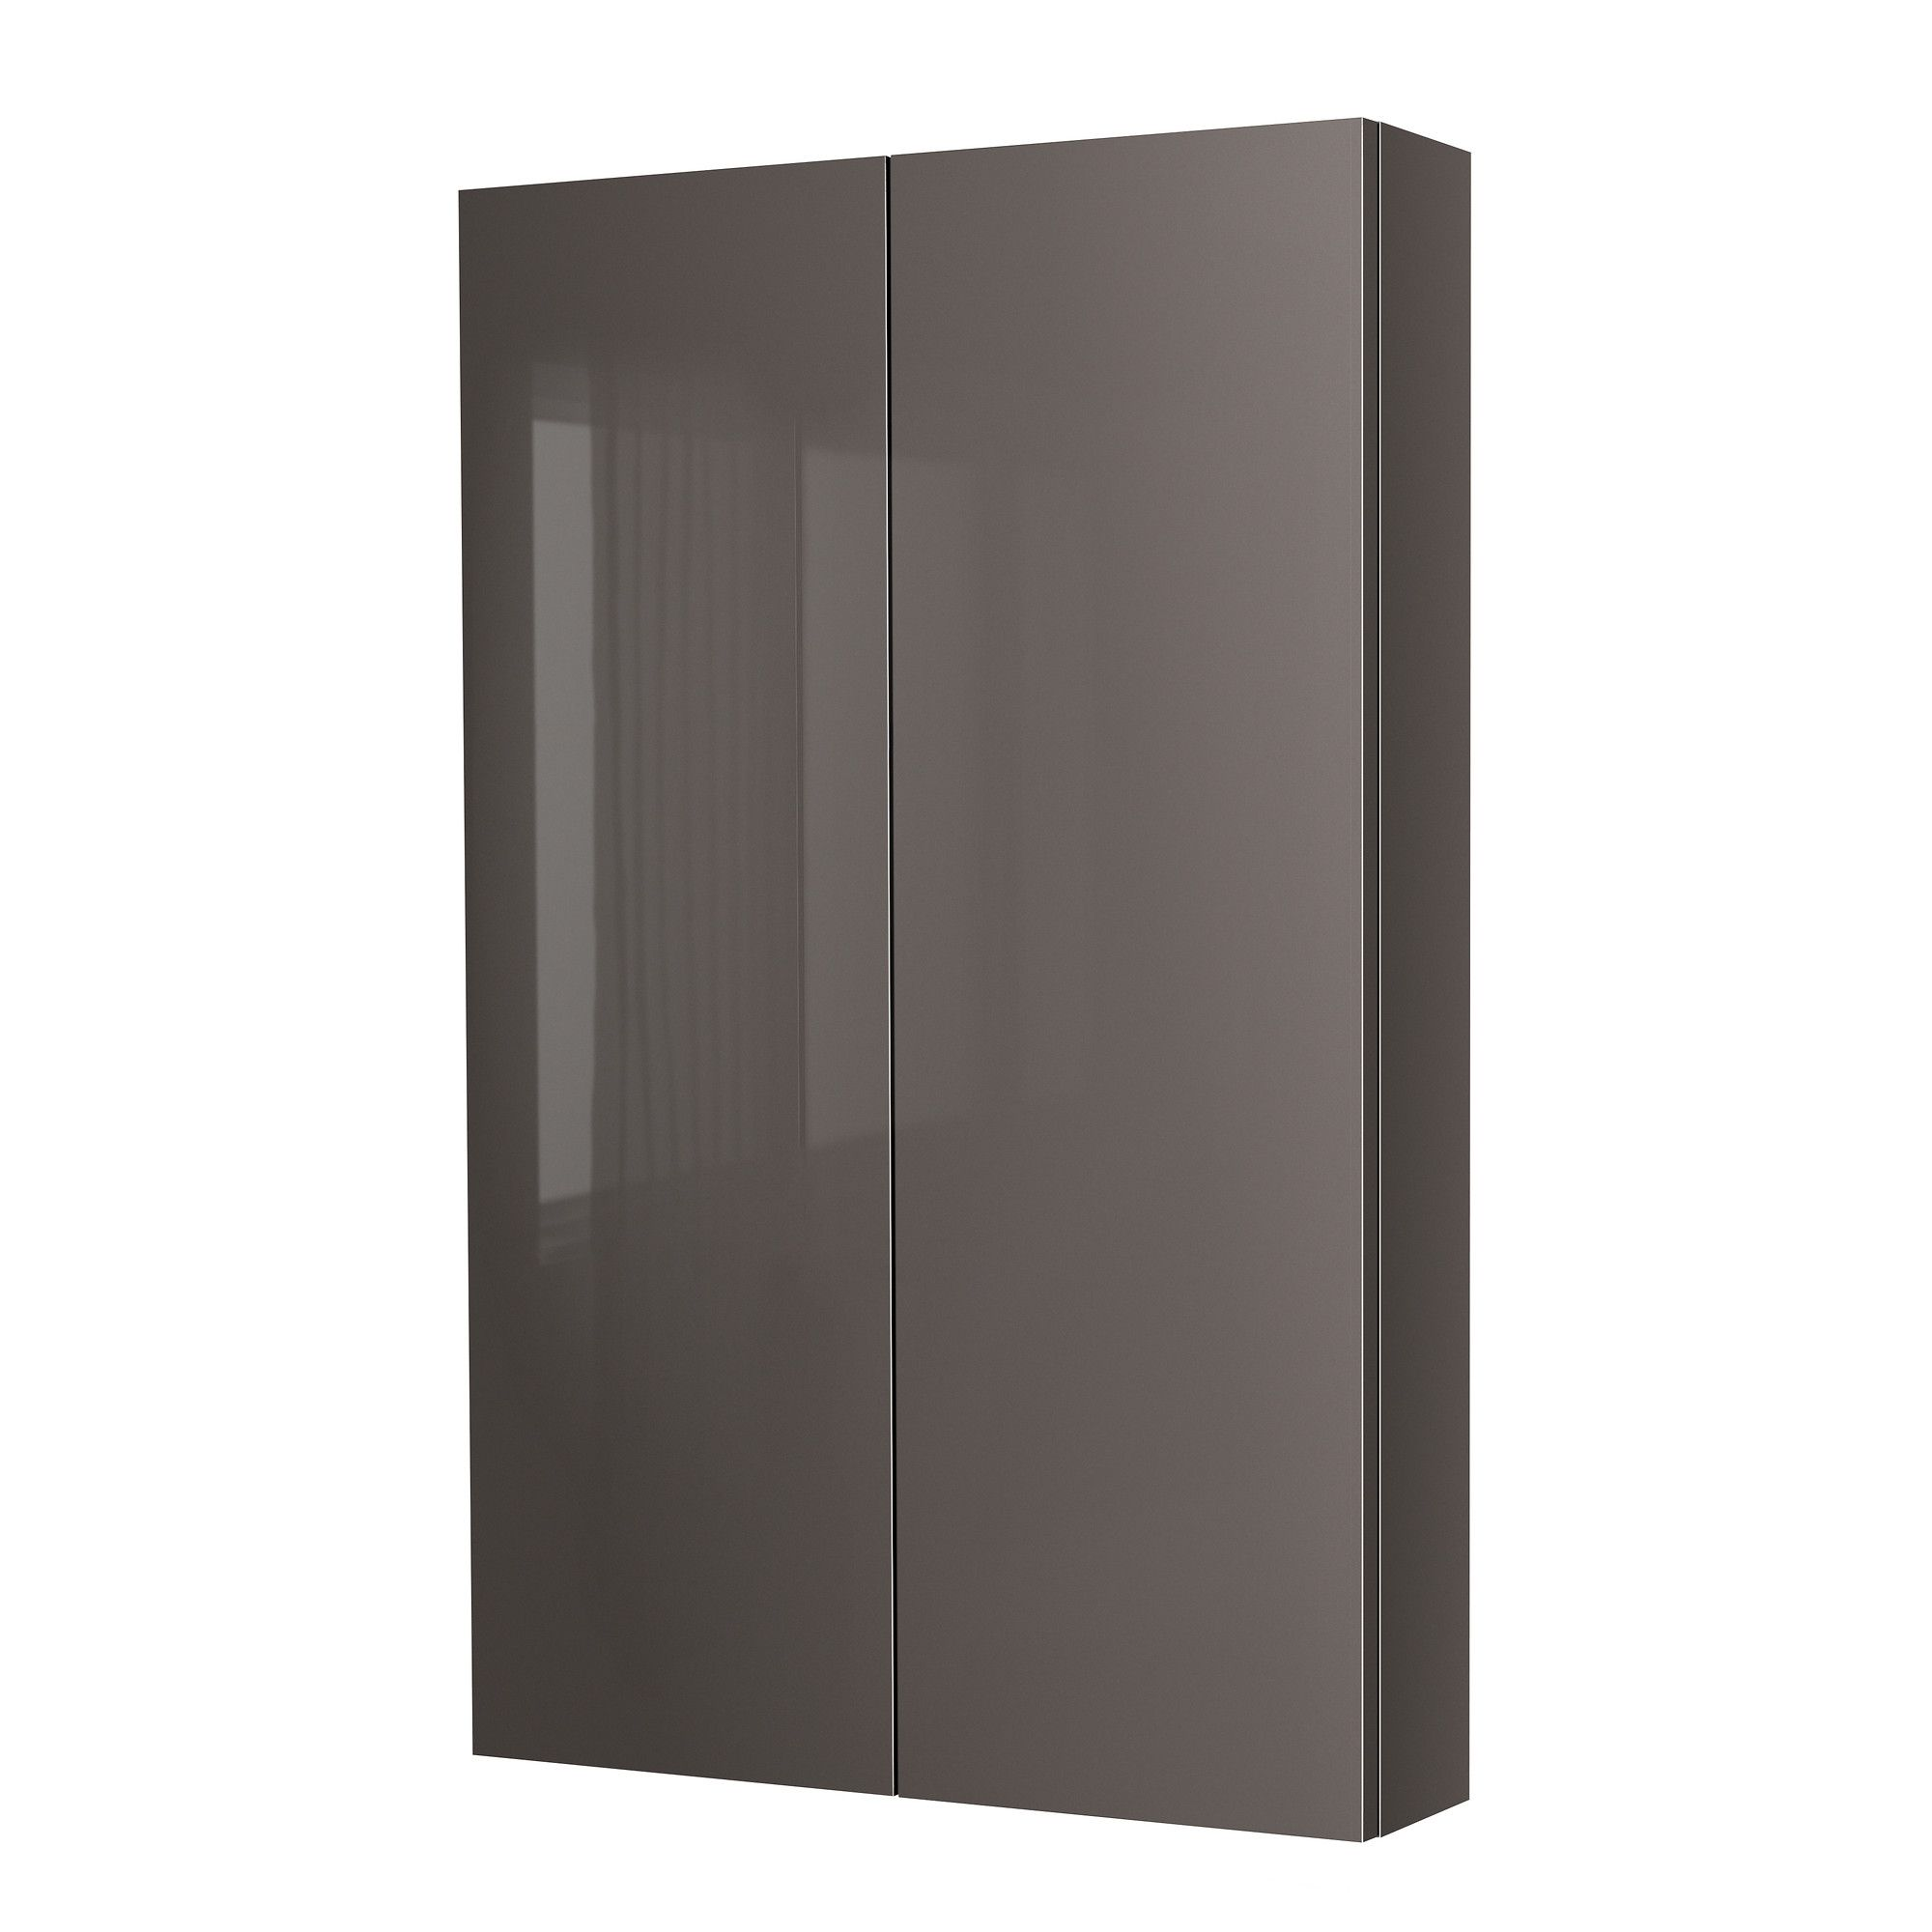 Fresh Home Furnishing Ideas And Affordable Furniture Black Cabinets Bathroom Wall Cabinet Bathroom Wall Cabinets